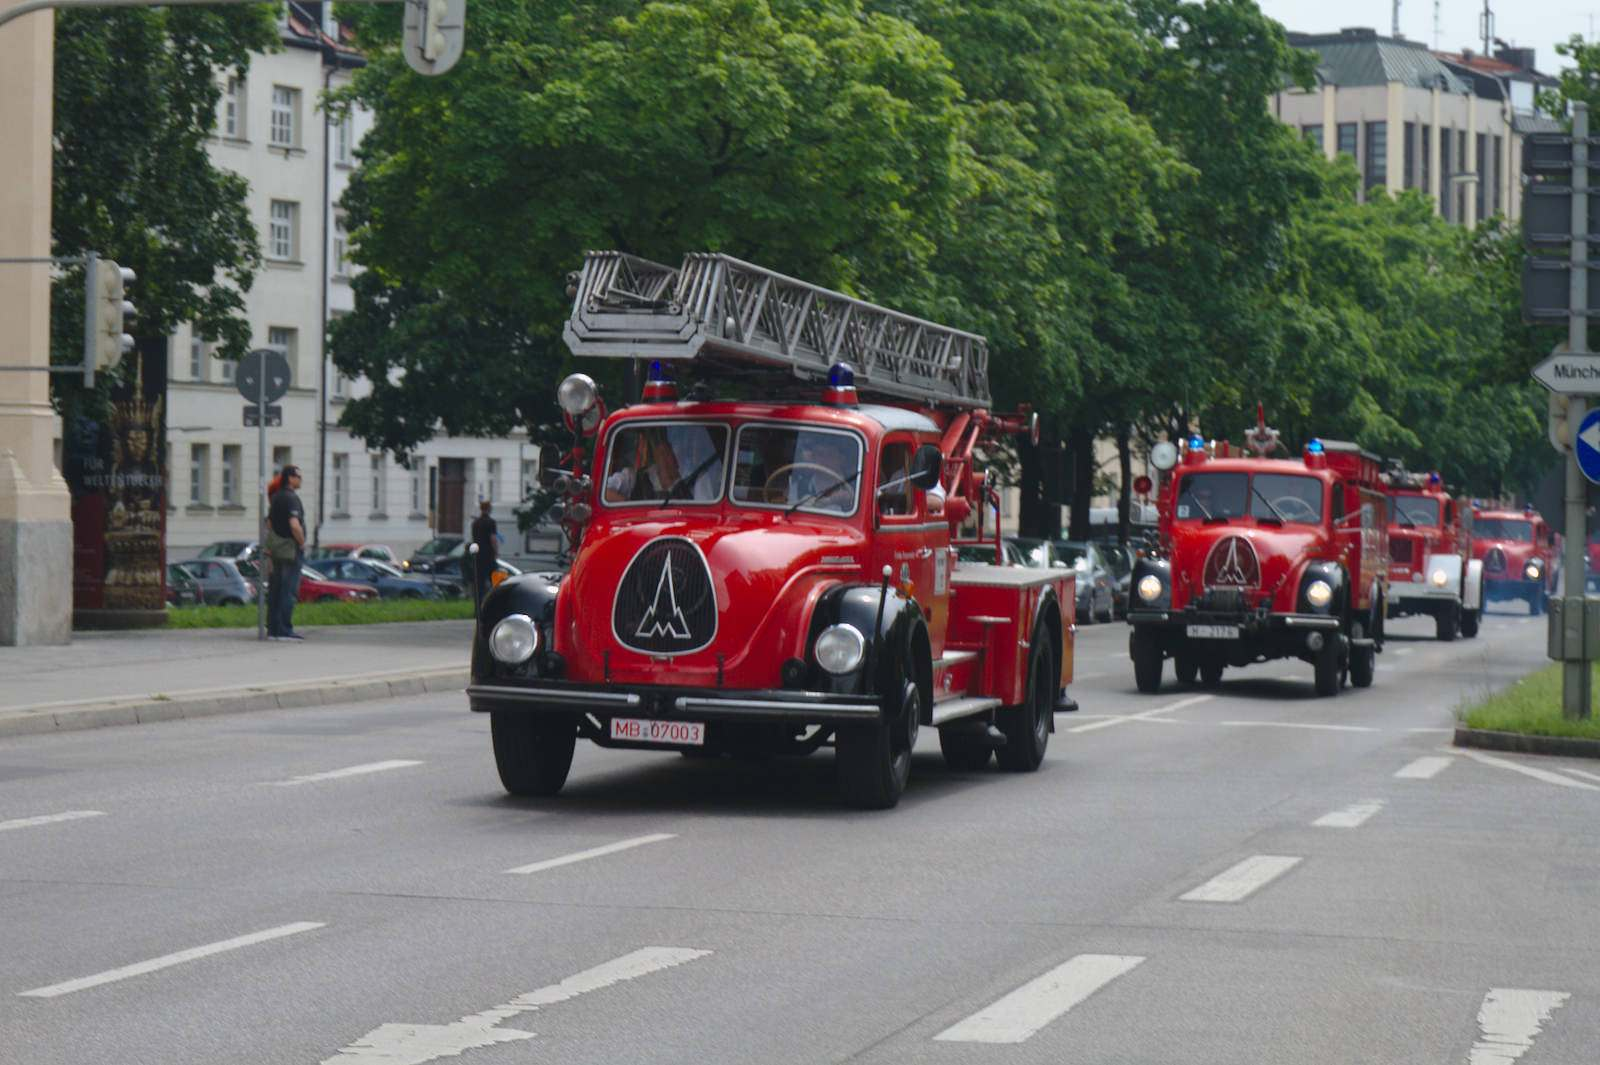 volunteer fire department15 150 Years Volunteer Fire Department in Munich